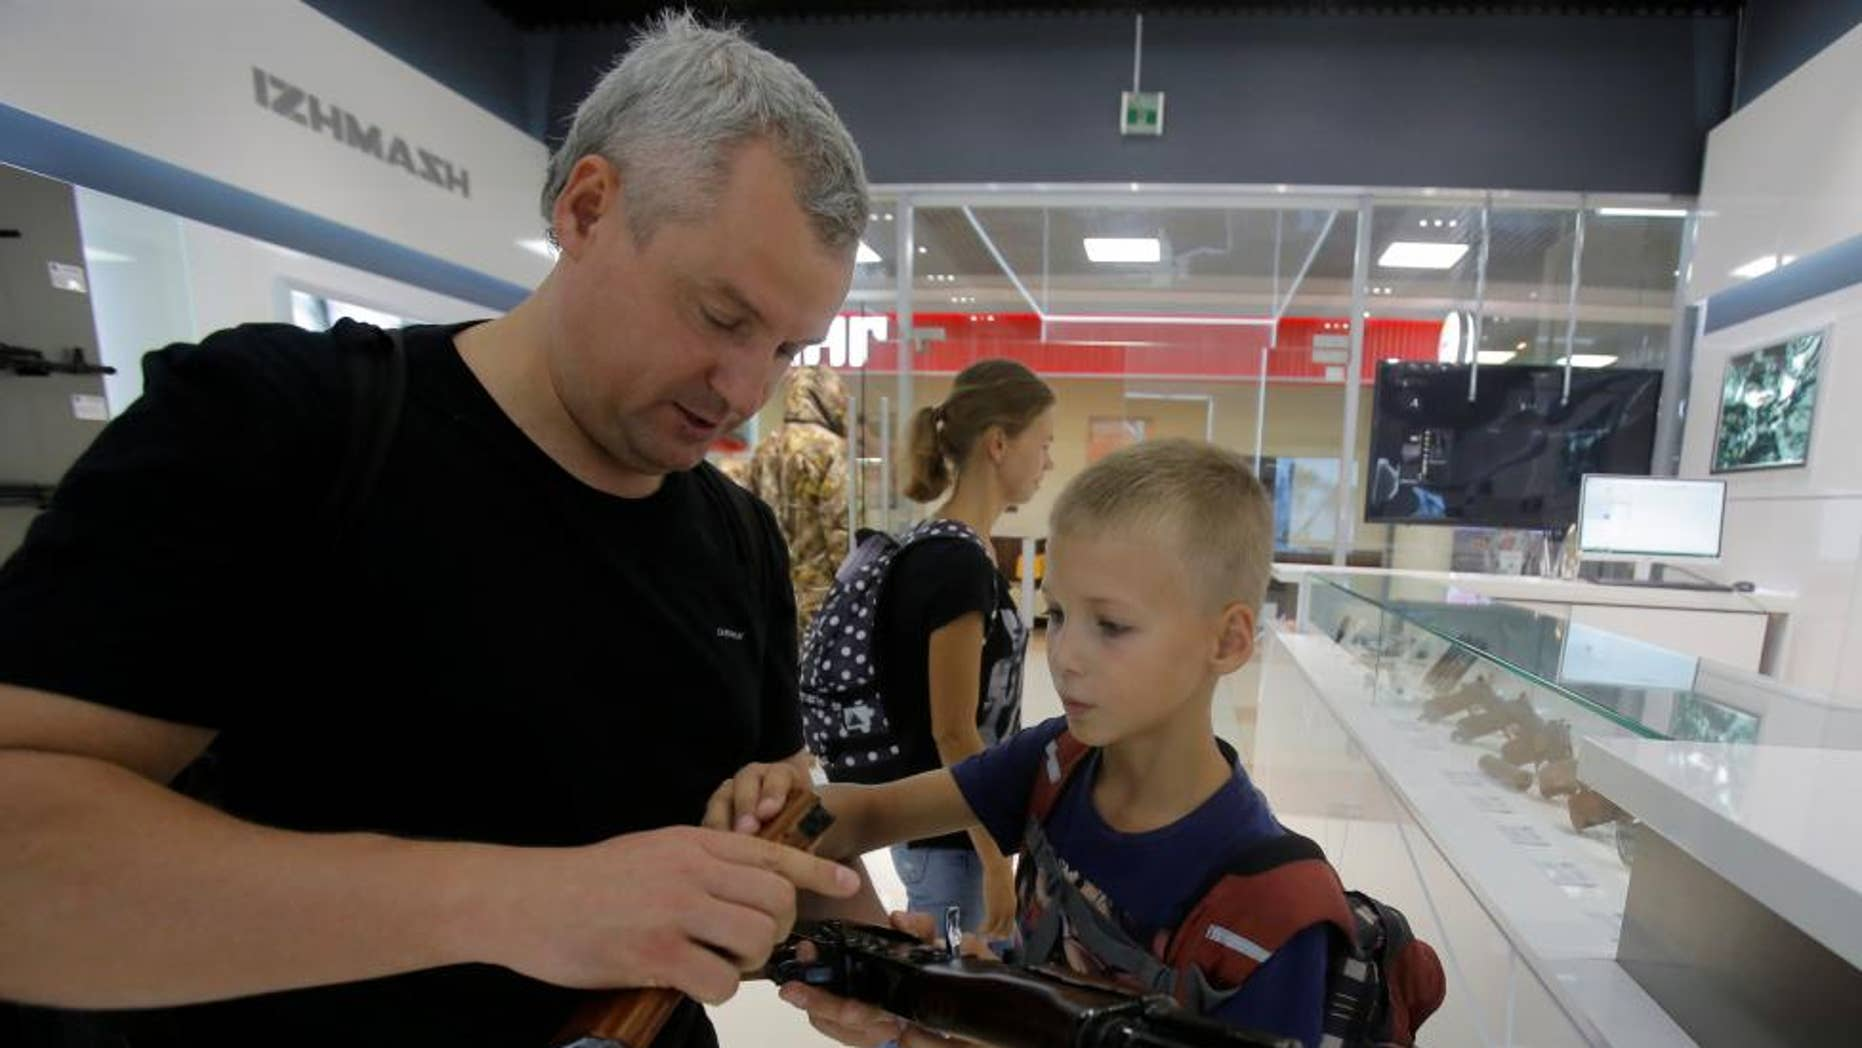 Kalashnikov, whose AK-47 assault rifle has armed Russian forces for 70 years and been the preferred weapon of insurgents across continents, has opened a store at Moscow's Sheremetyevo airport selling souvenirs including plastic model guns, the company said.